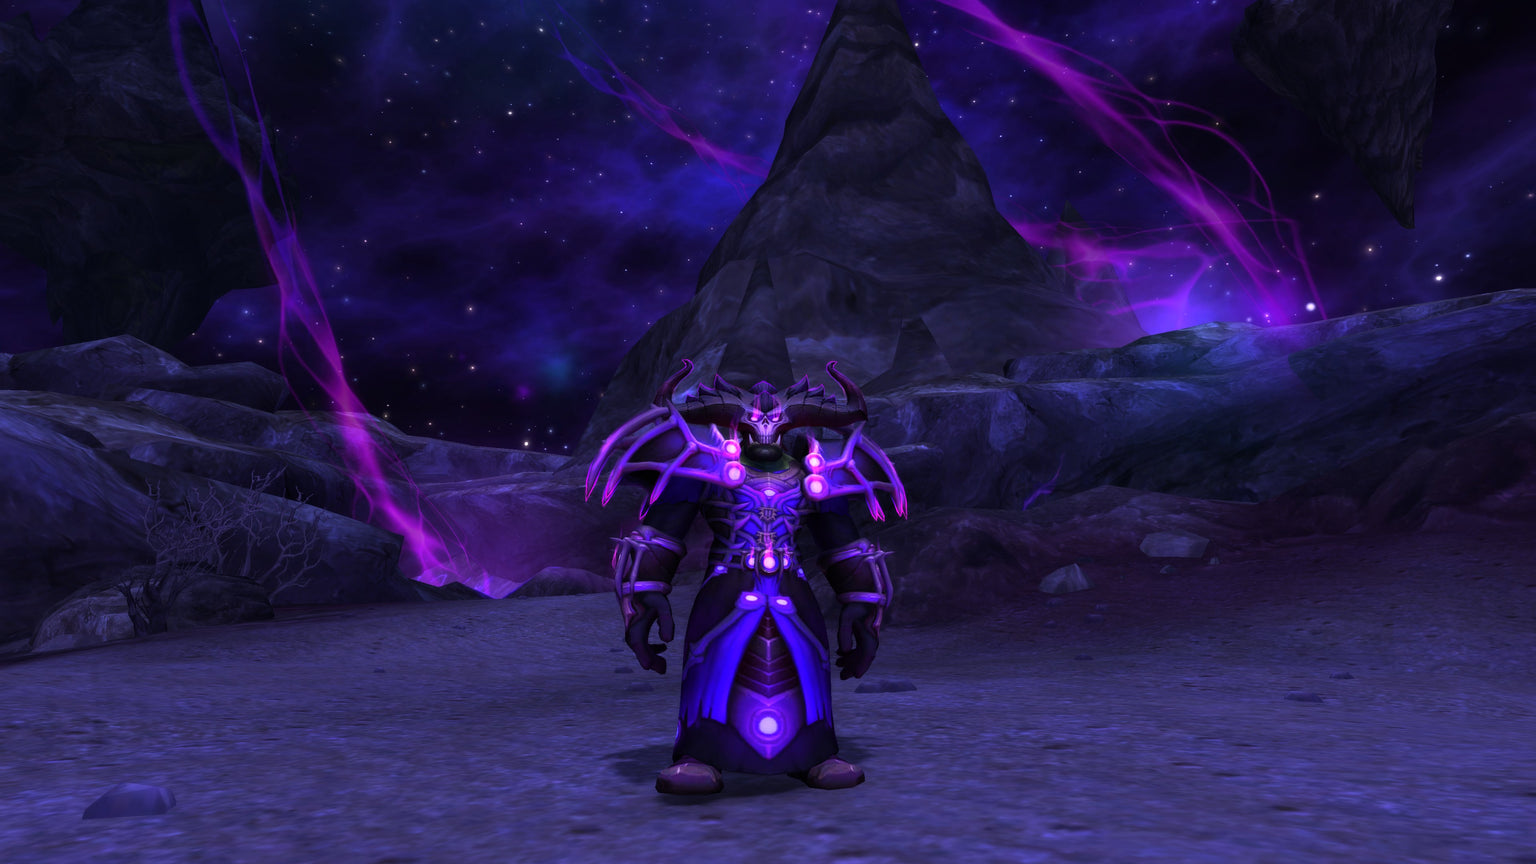 421 Warlock | 3x Gladiator | Vicious & Ruthless Twilight Drakes | All 3 Mage Tower | Arena Master | Green Fire